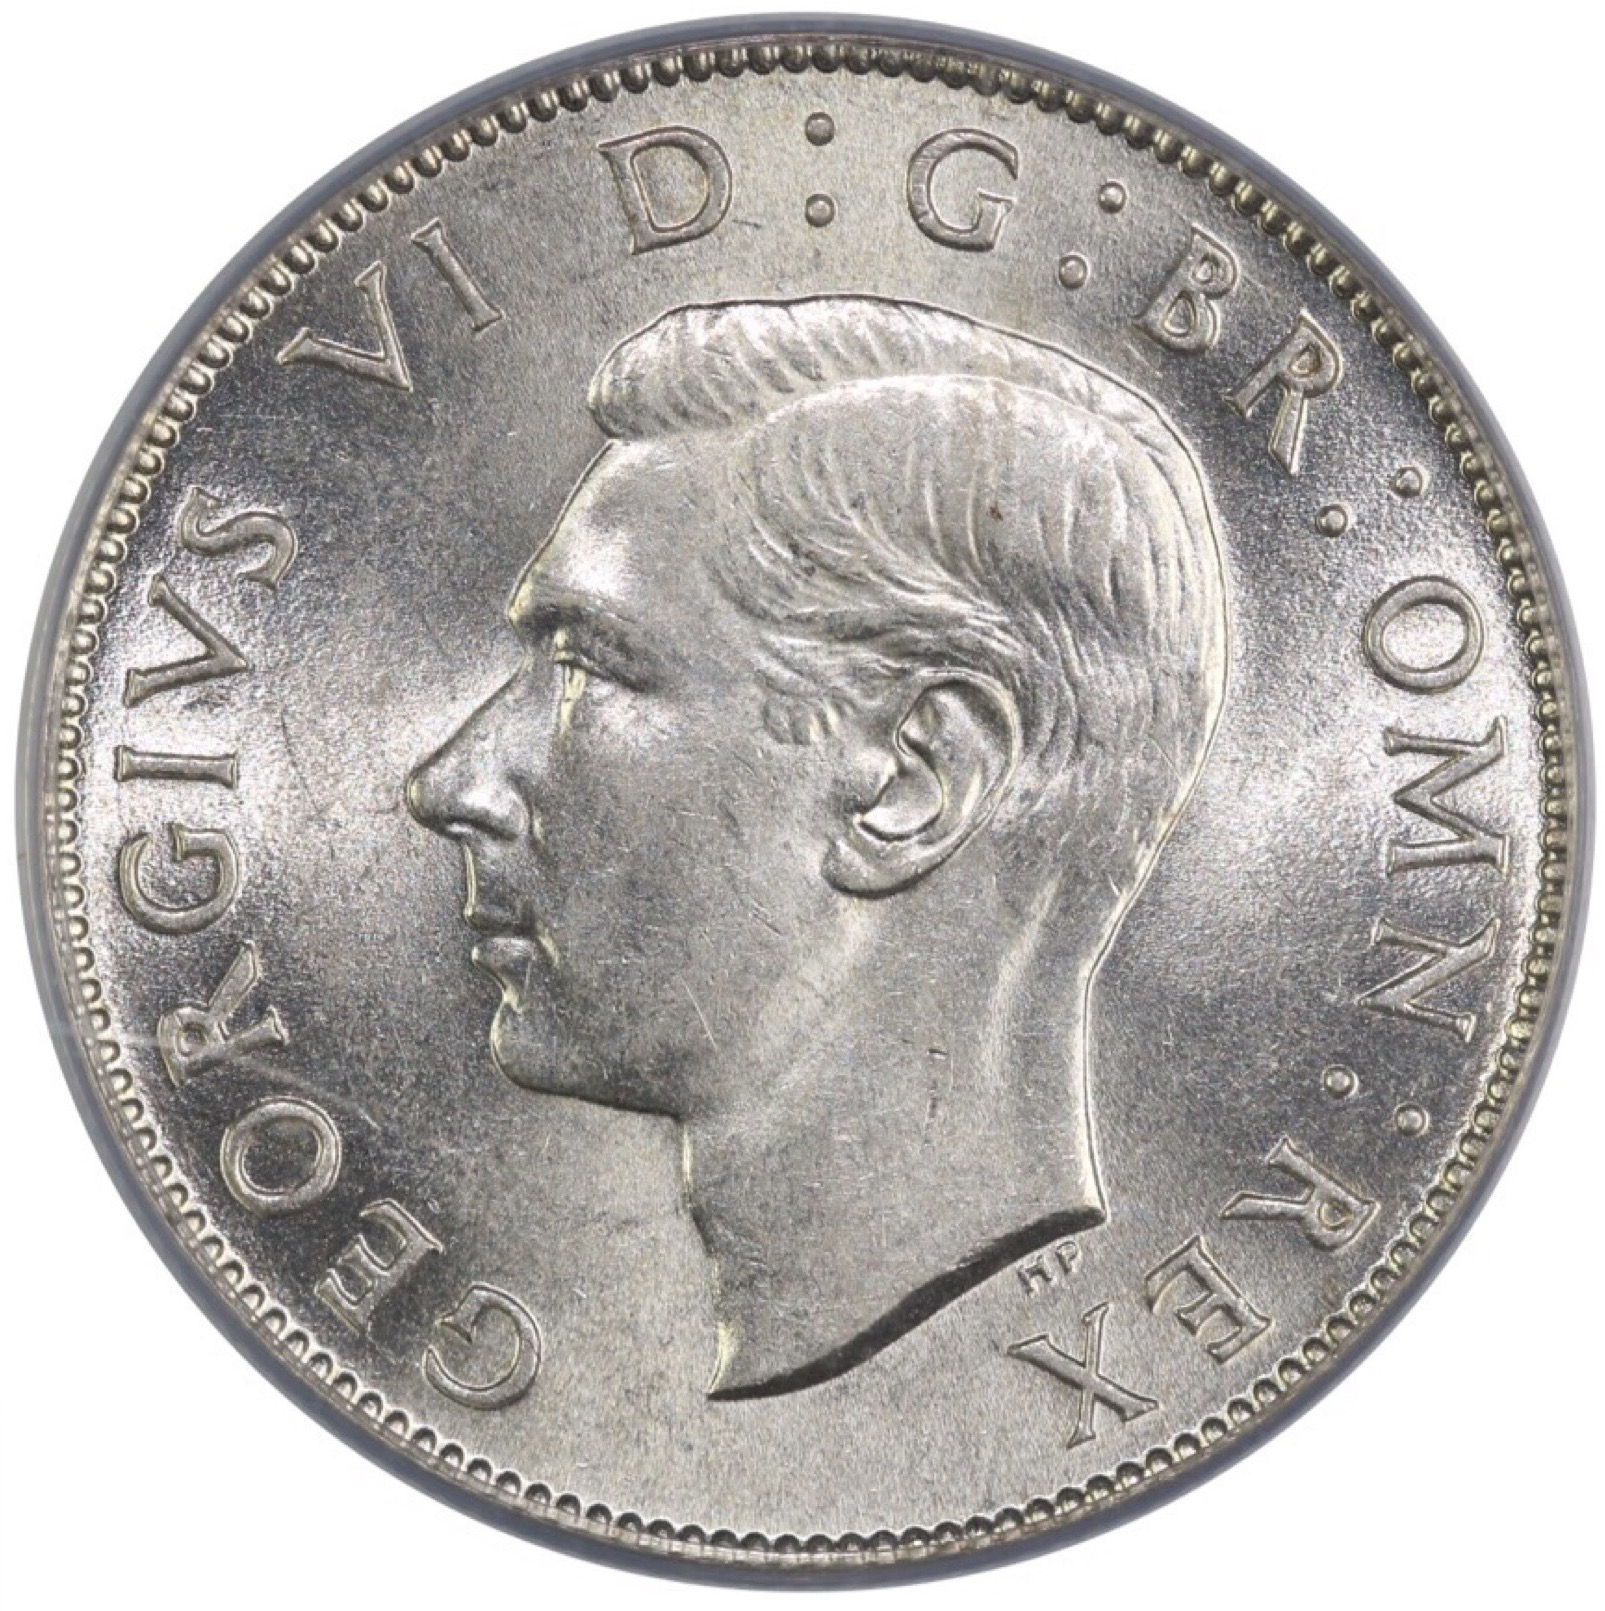 Two Shillings (Florin) 1946: Photo 1946 Florin, George VI